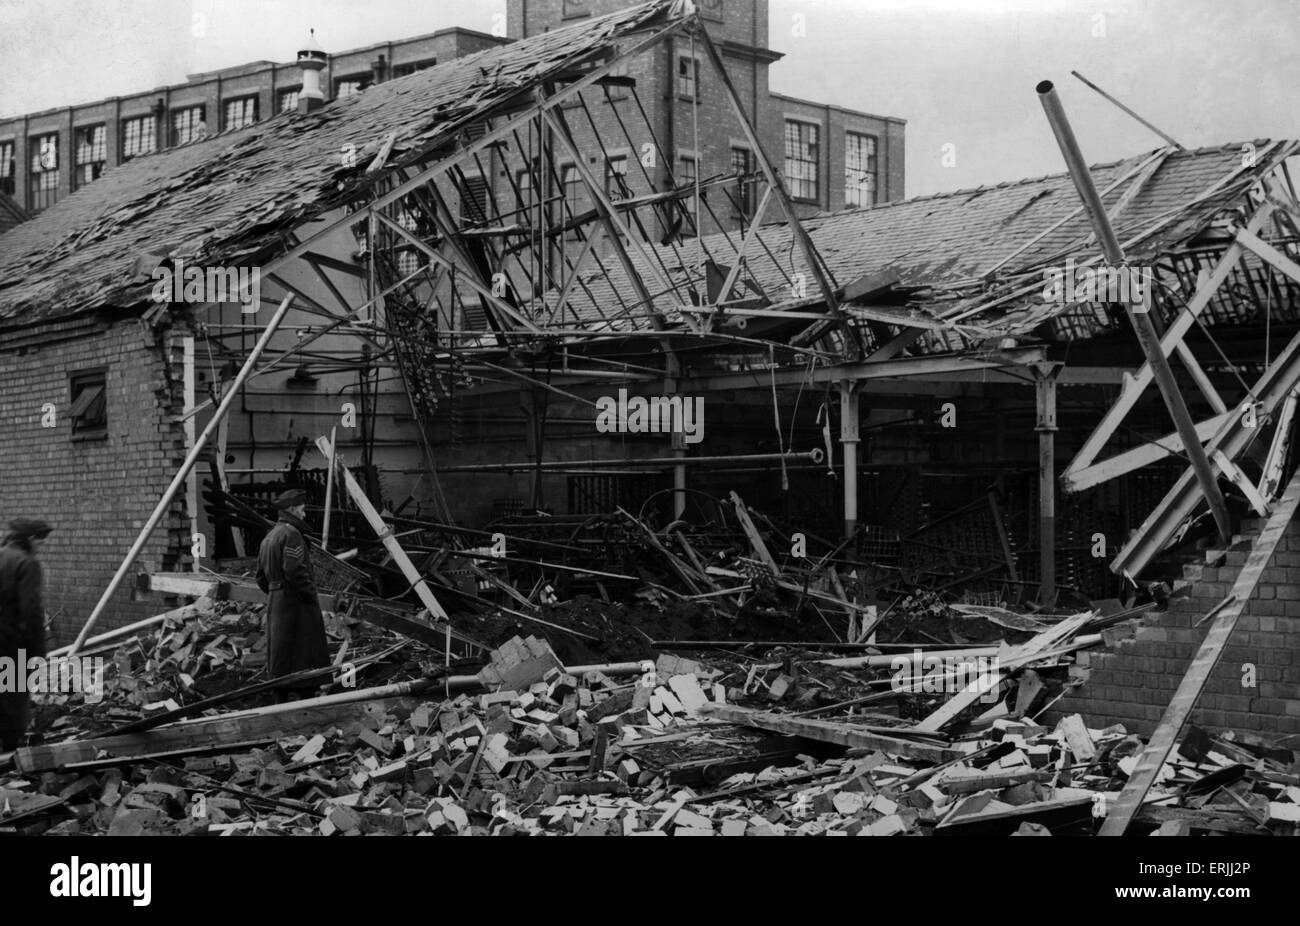 World War Two Air Raids, Birmingham,  9th April 1940. Damage in West Midlands town after last night's raid. Stock Photo